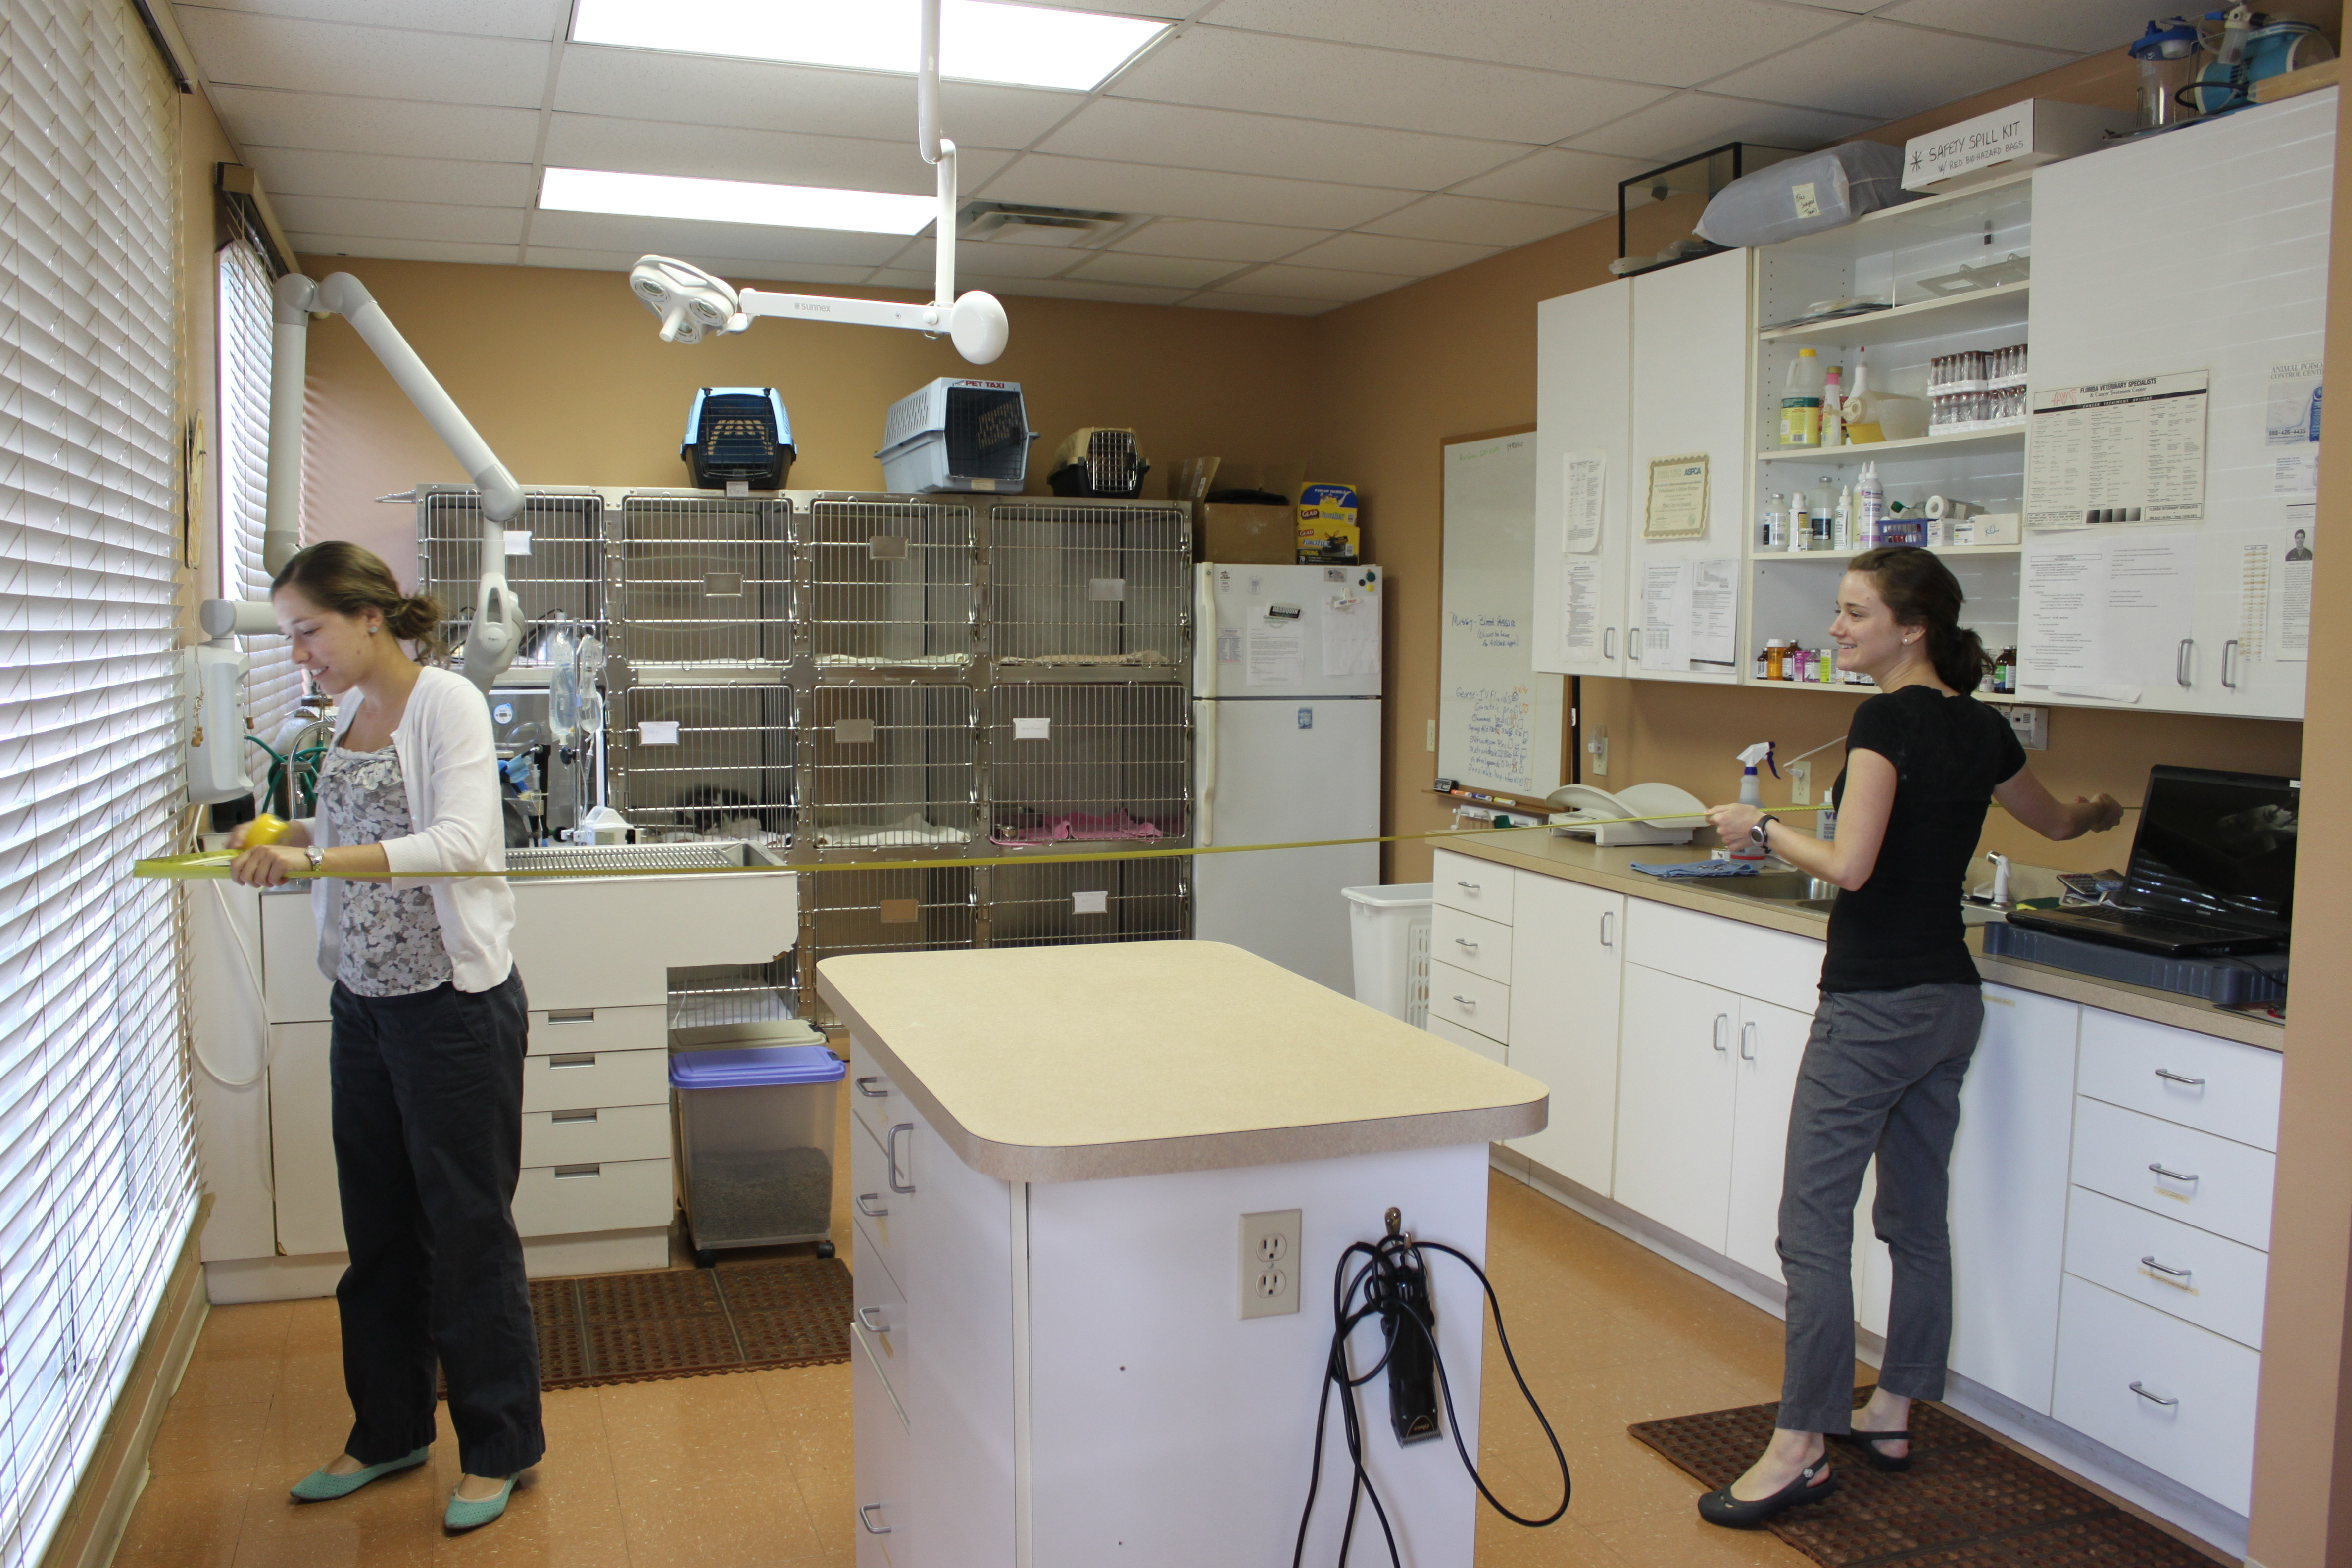 University Of Florida Veterinary Students Dani Marks And Allison Vansickle Measure The Treatment Room In A